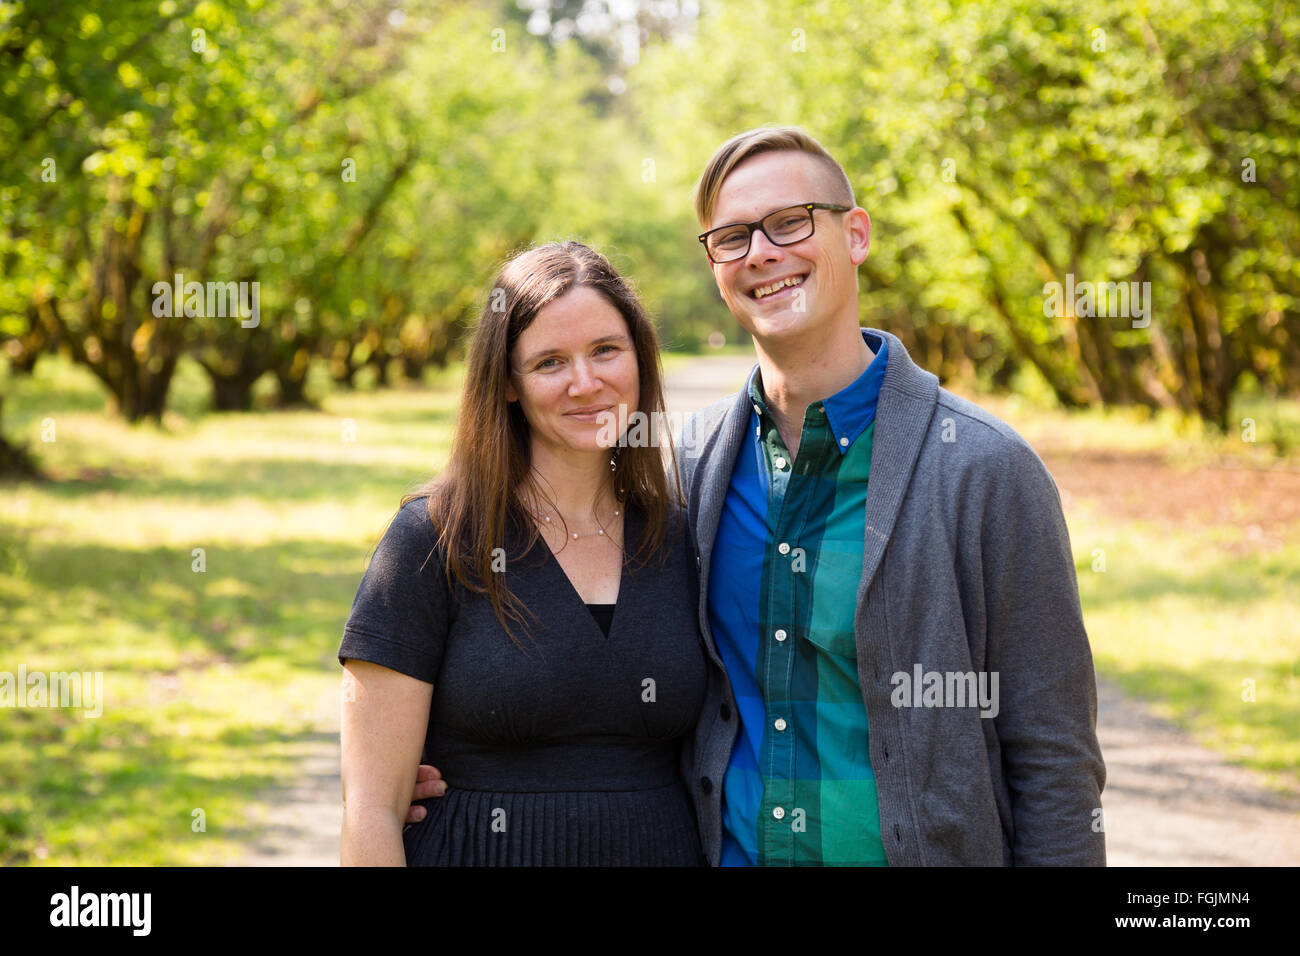 Lifestyle portrait of a happy couple outdoors with natural light. - Stock Image